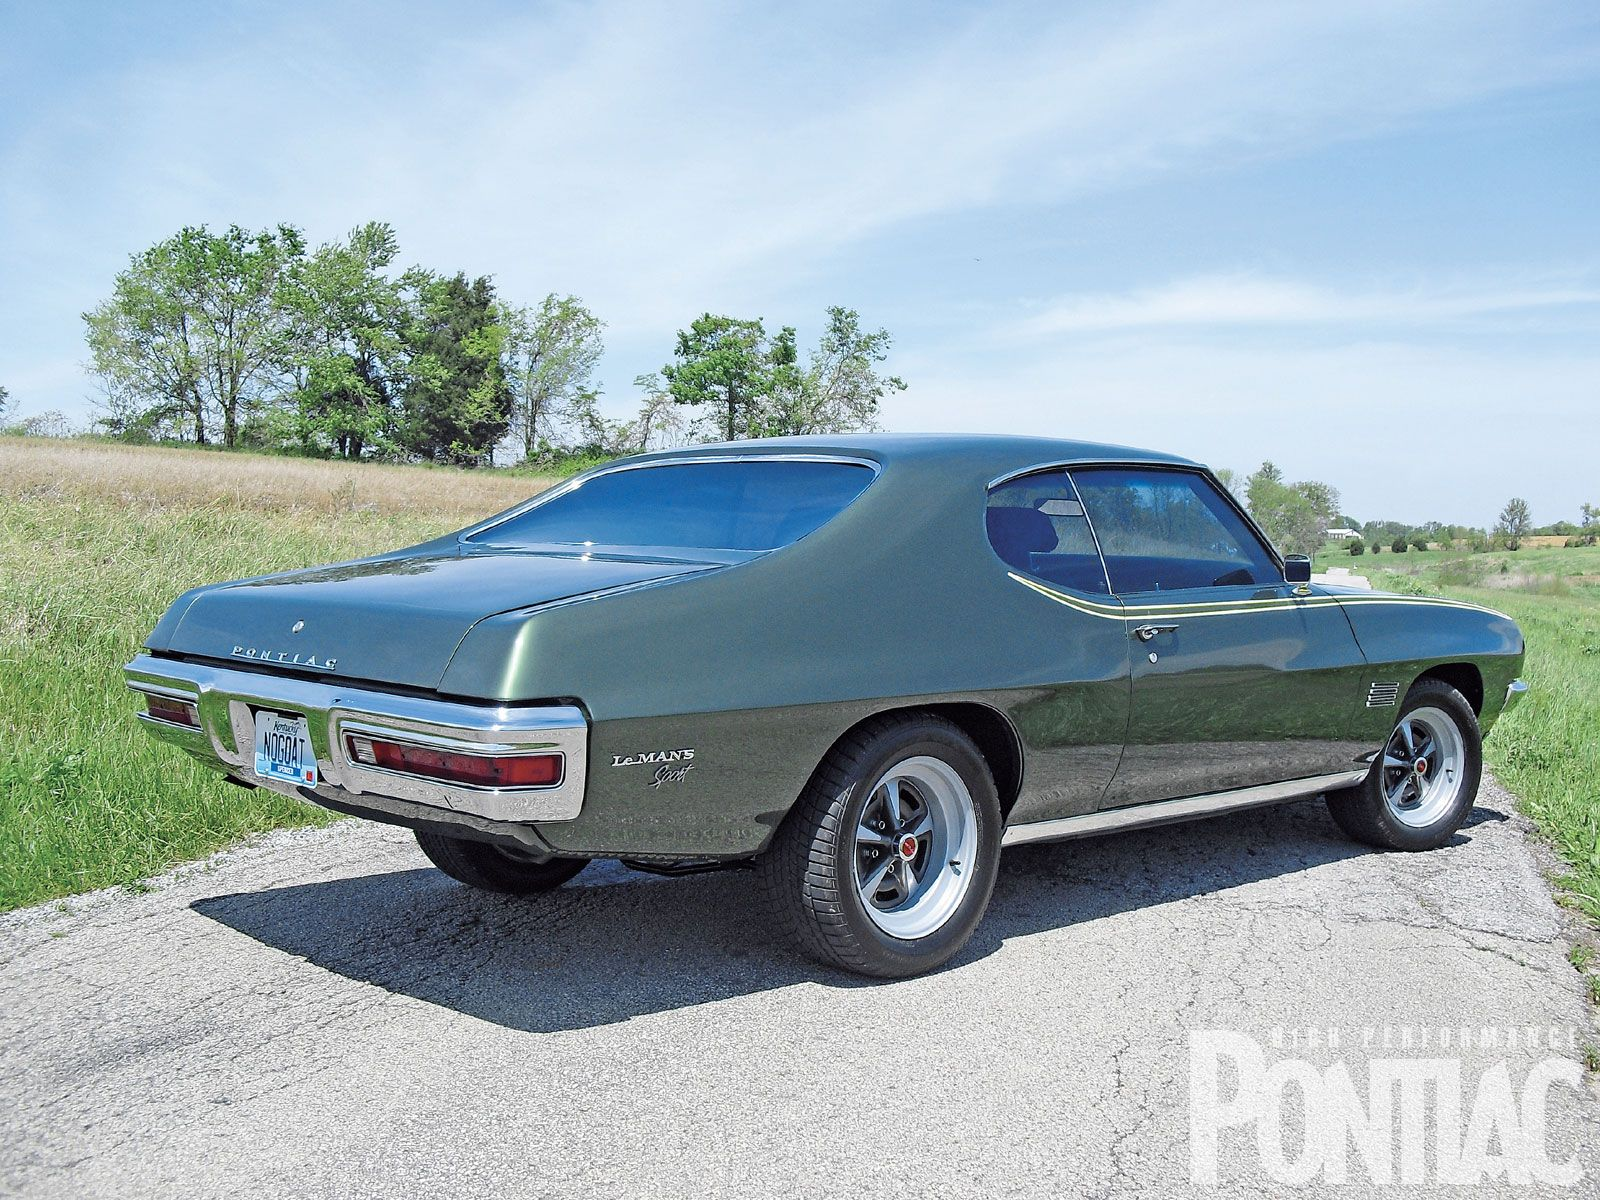 hight resolution of 1970 pontiac lemans sport mine had two tone paint with pin striping and a 427 engine it could fly